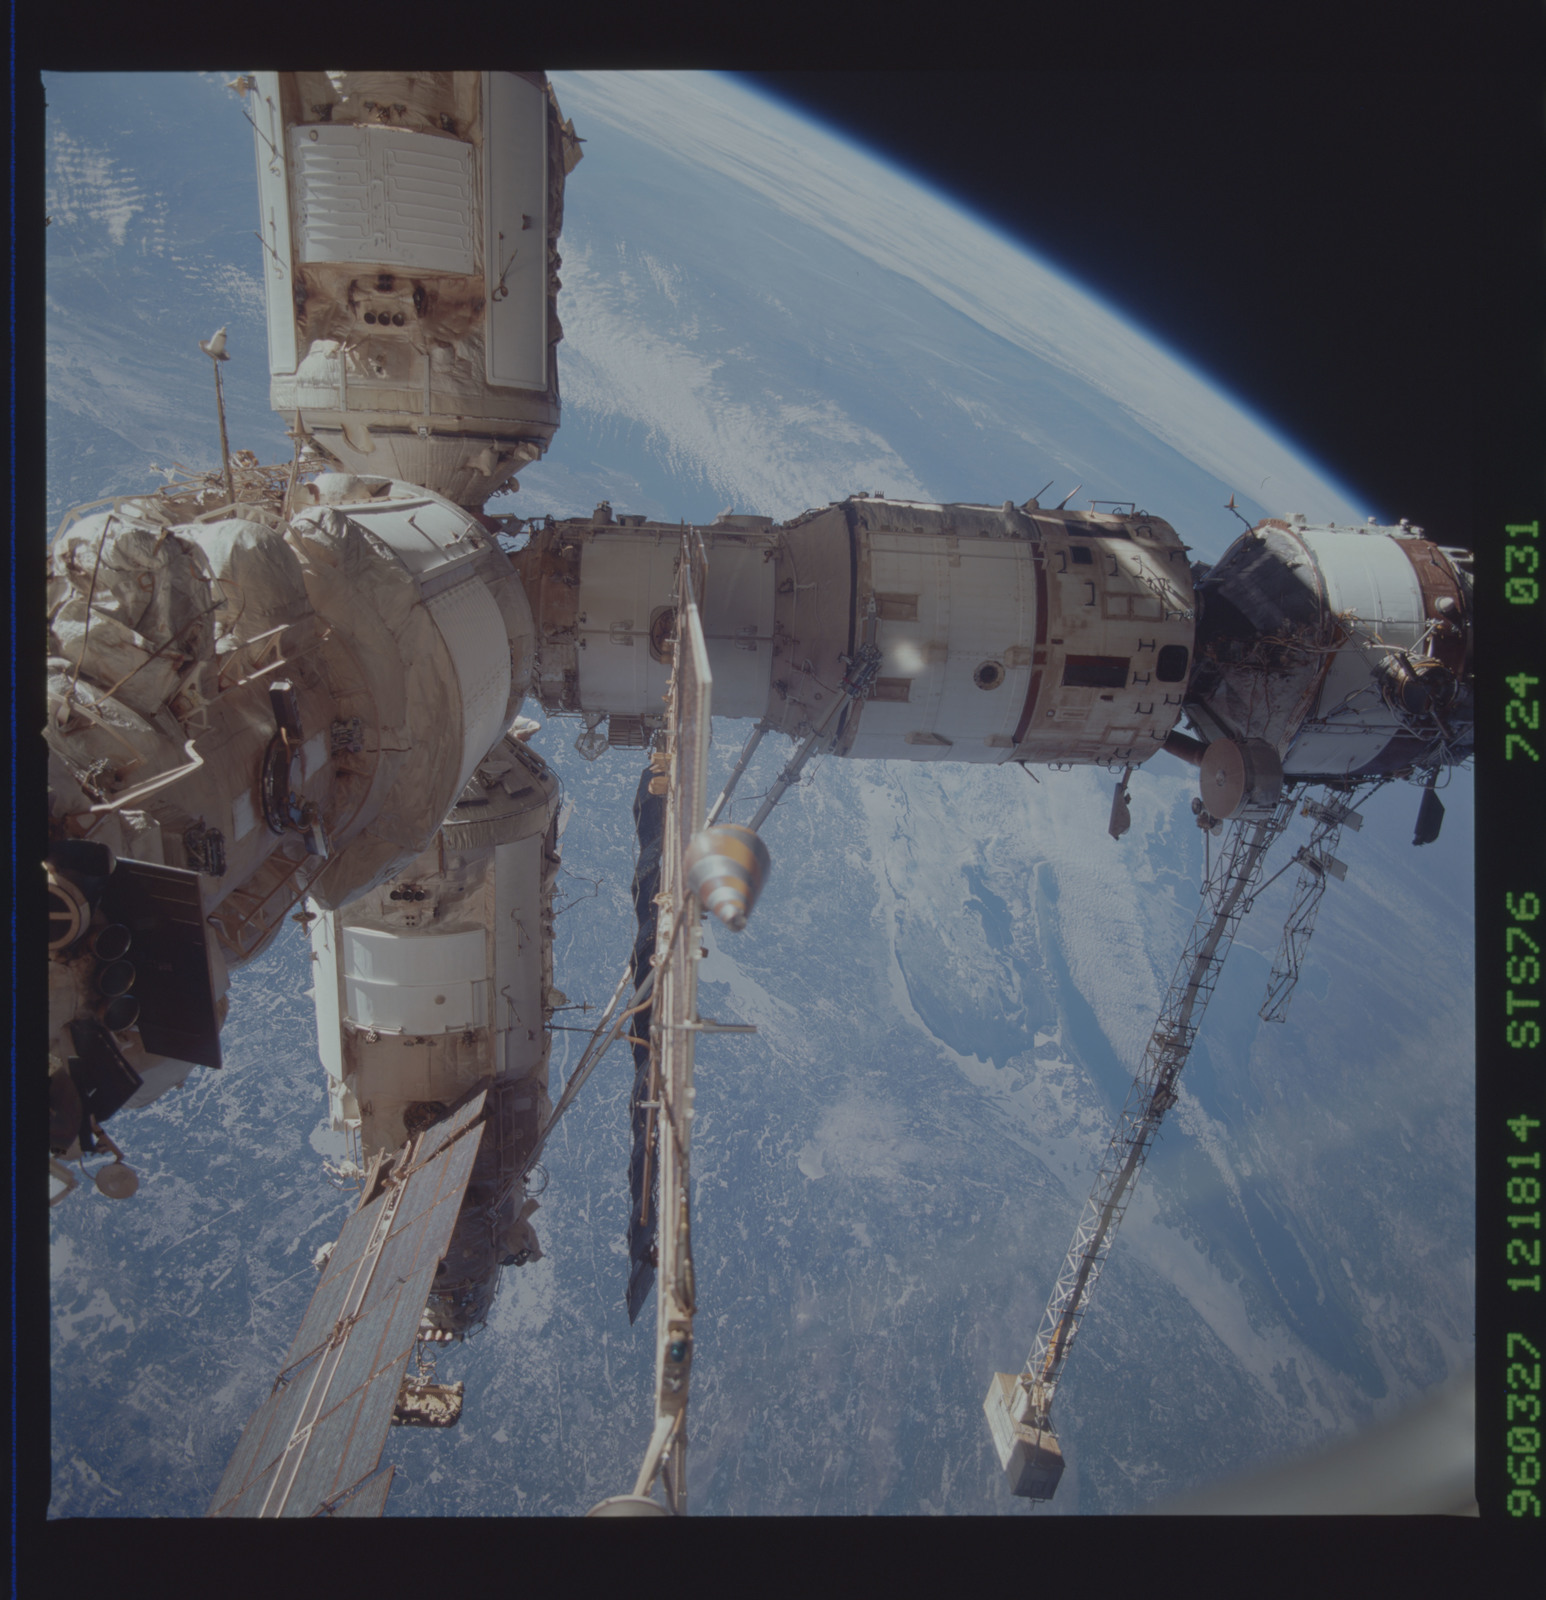 STS076-724-031 - STS-076 - Mir Space Station views taken during STS-76 mission